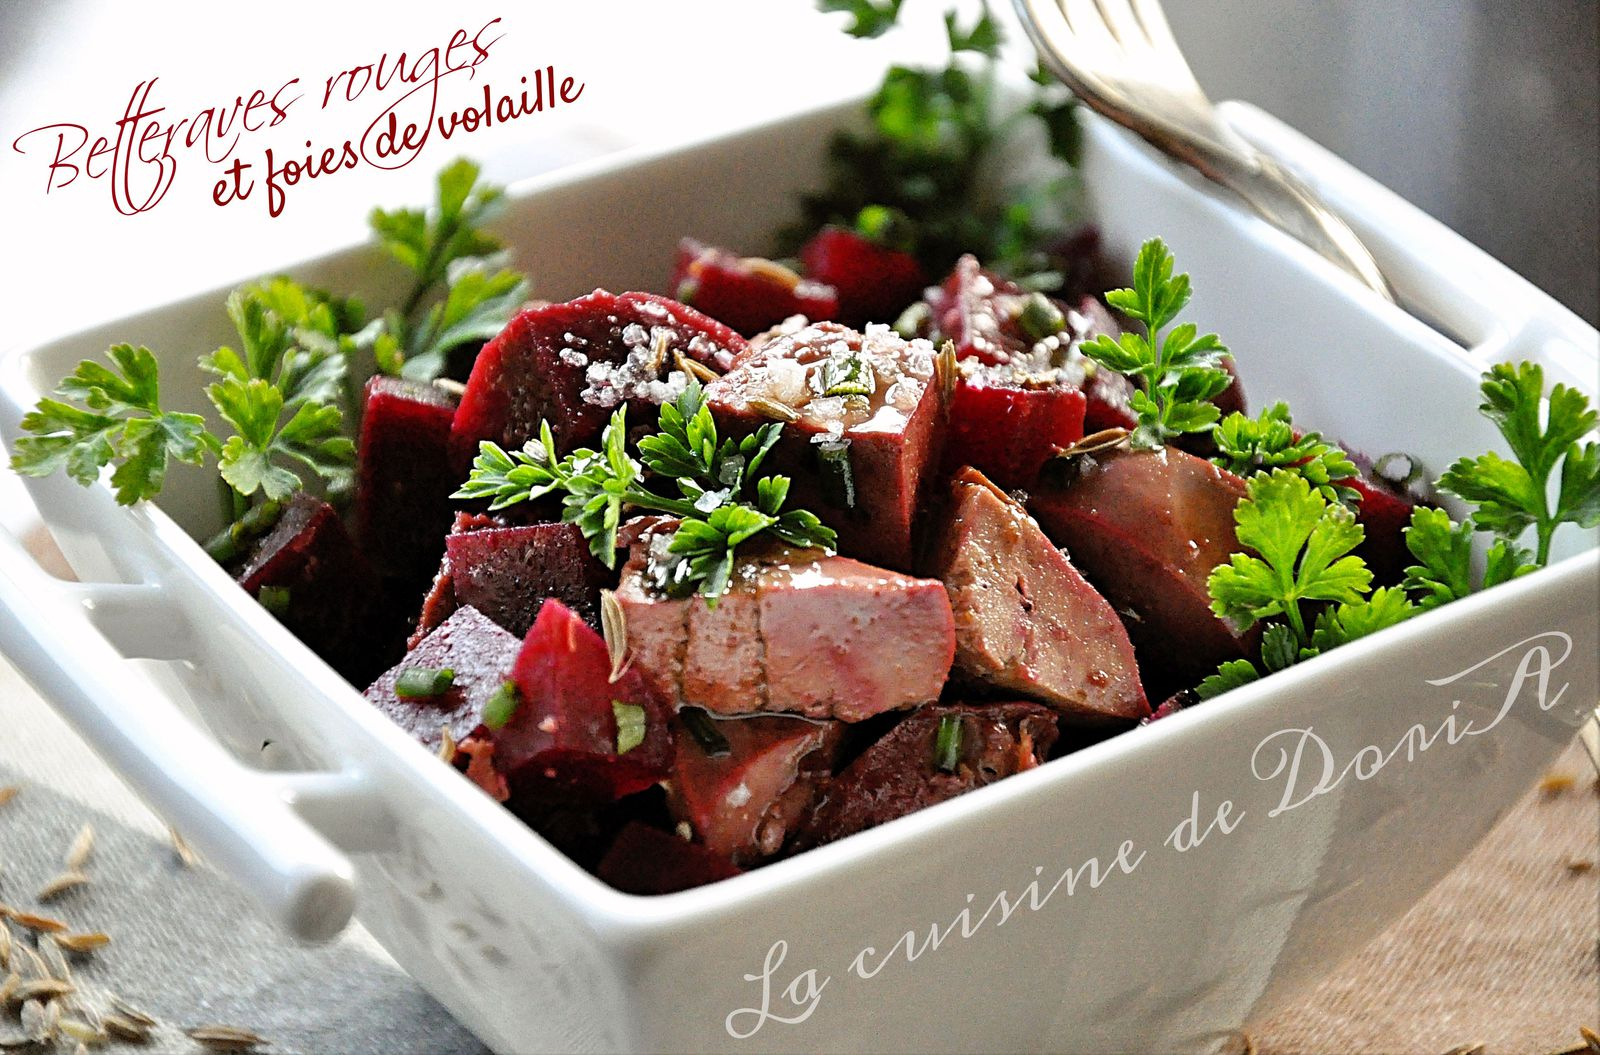 Salade de betteraves et foies de volaille